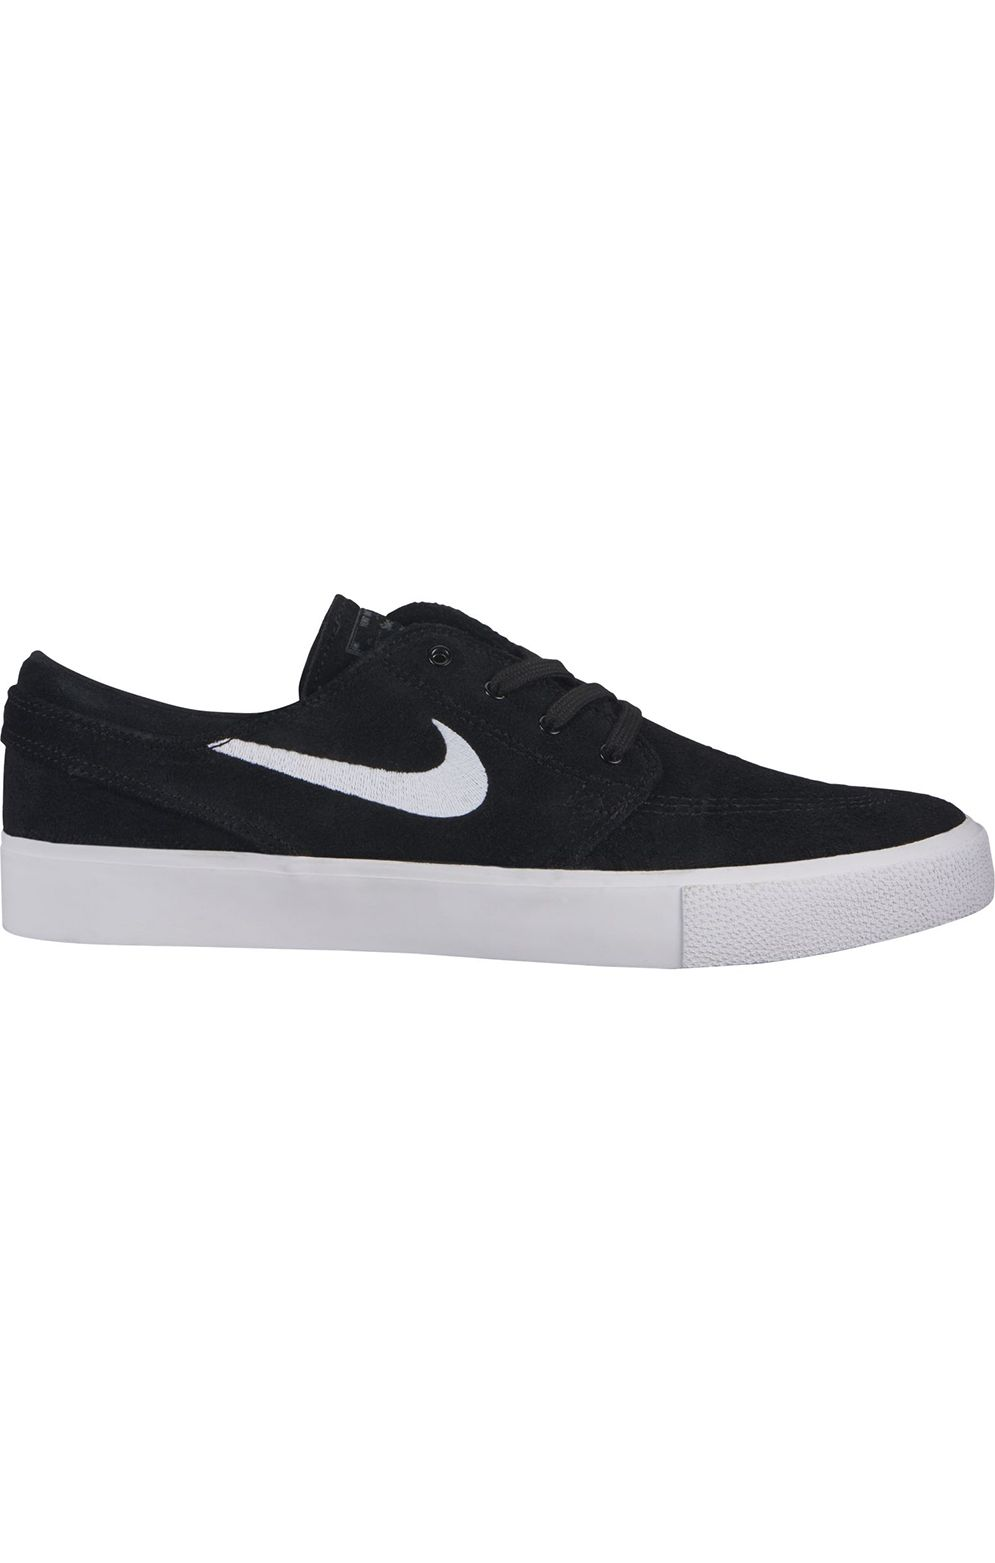 Tenis Nike Sb ZOOM STEFAN JANOSKI RM Black/White-Thunder Grey-Gum Light Brown